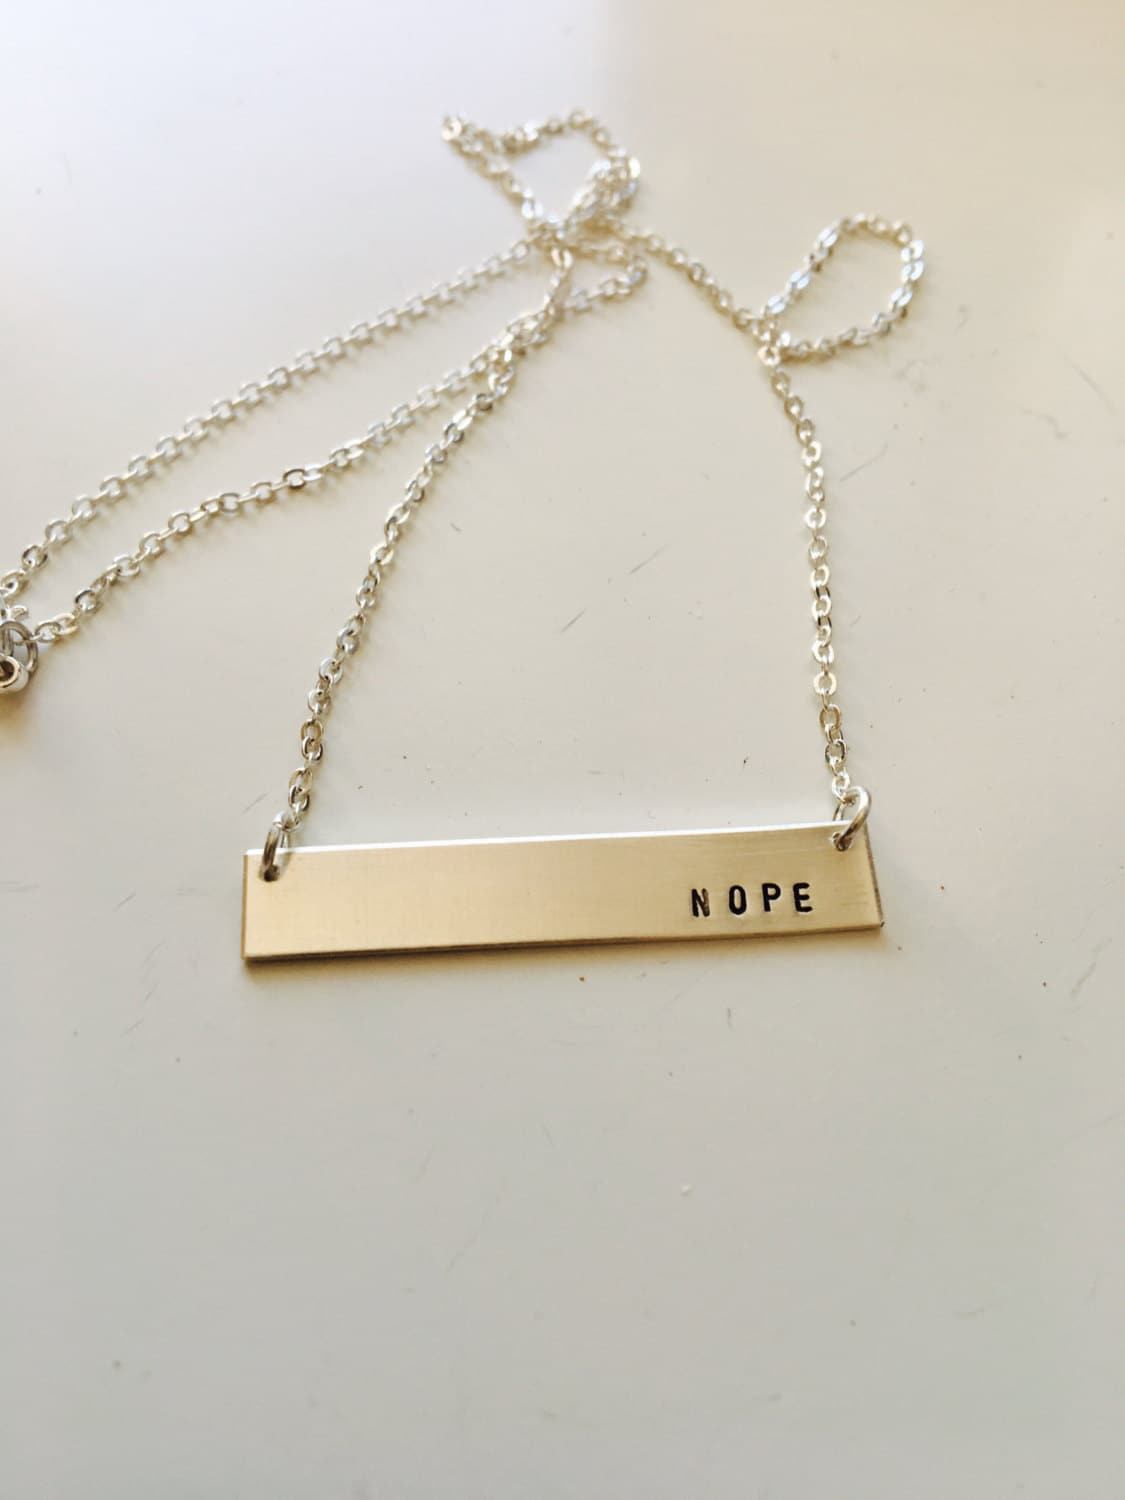 Nope charm necklace// gold fill charm necklace// gold fill// gold fill charm// 14k// sterling bar// bar necklace// sterling charm// gold bar